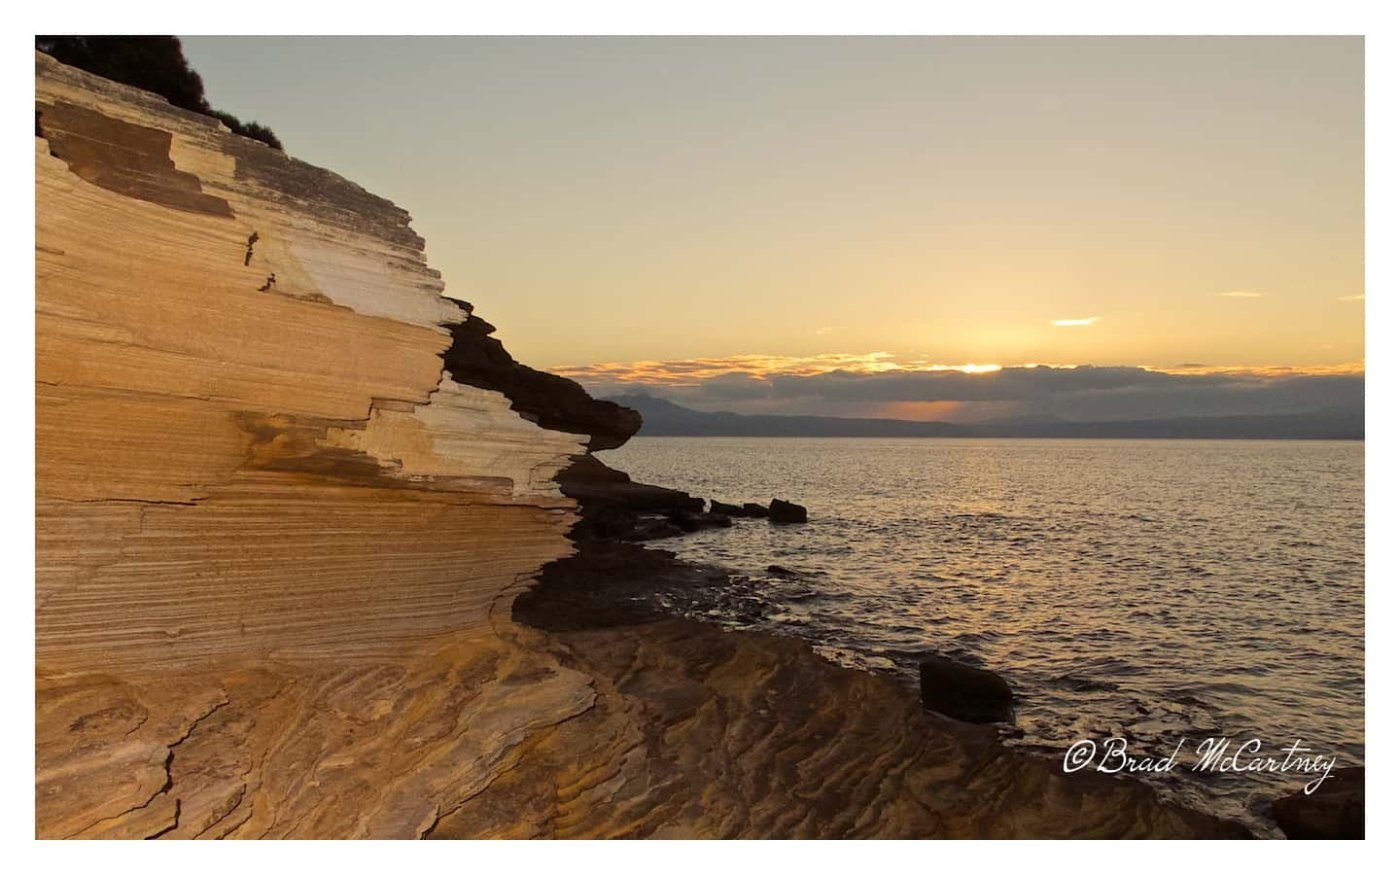 Painted cliffs are a nice place to watch sunset